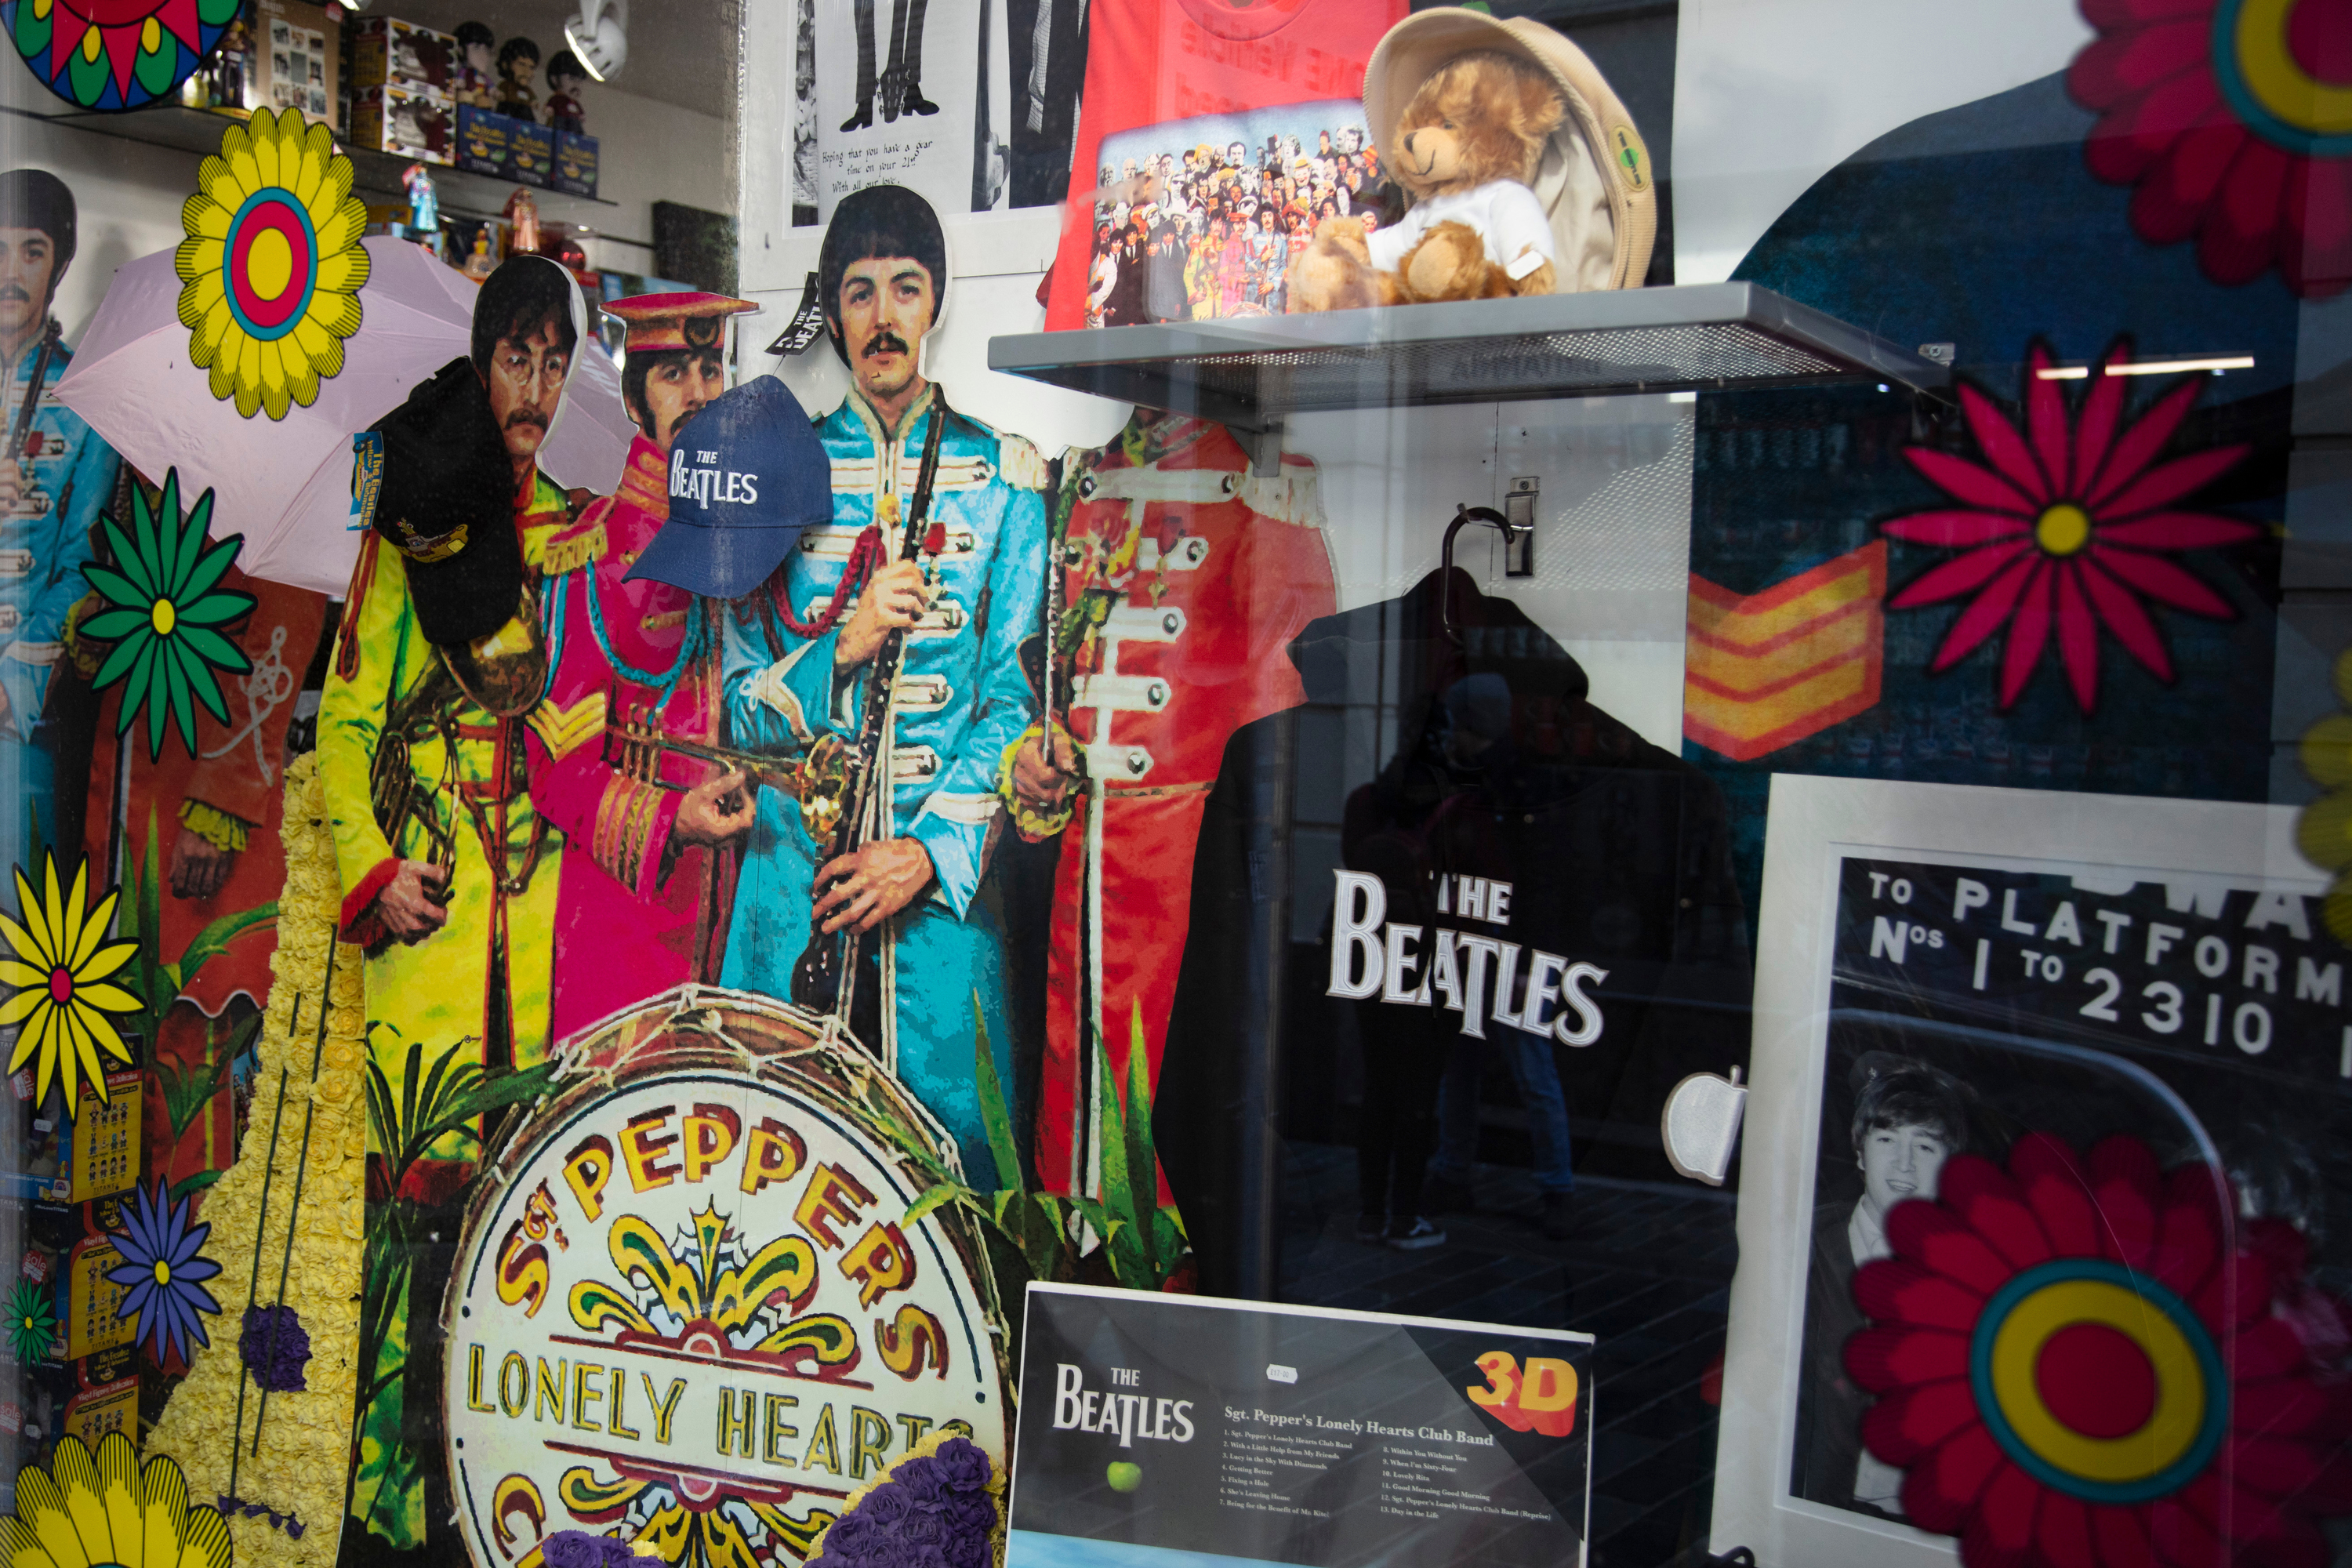 A Beatles pop-up is coming to NYC just in time for the holidays